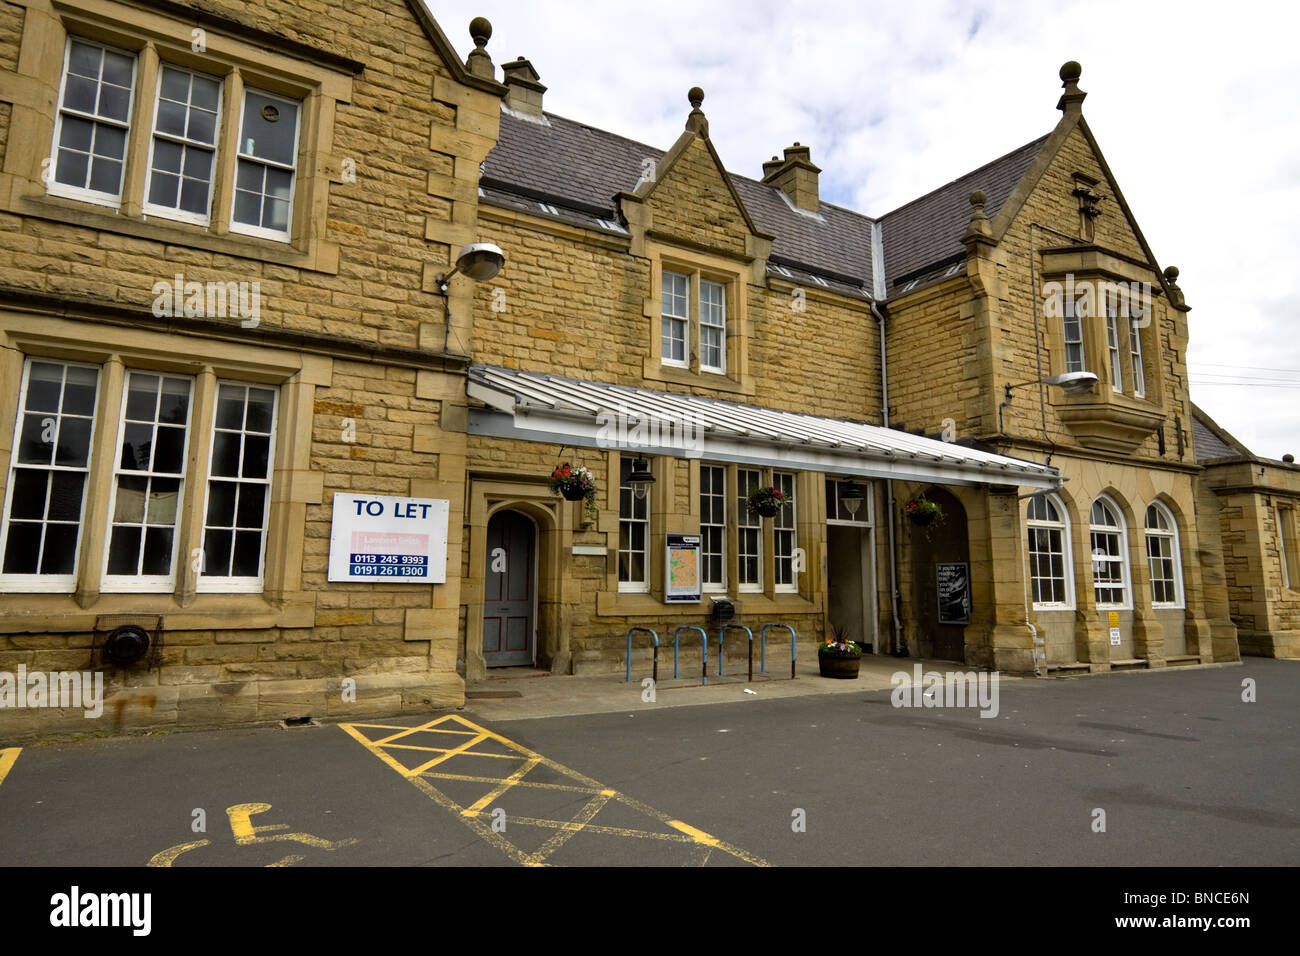 Morpeth Railway Station. Part of the station house building is available for commercial letting. - Stock Image